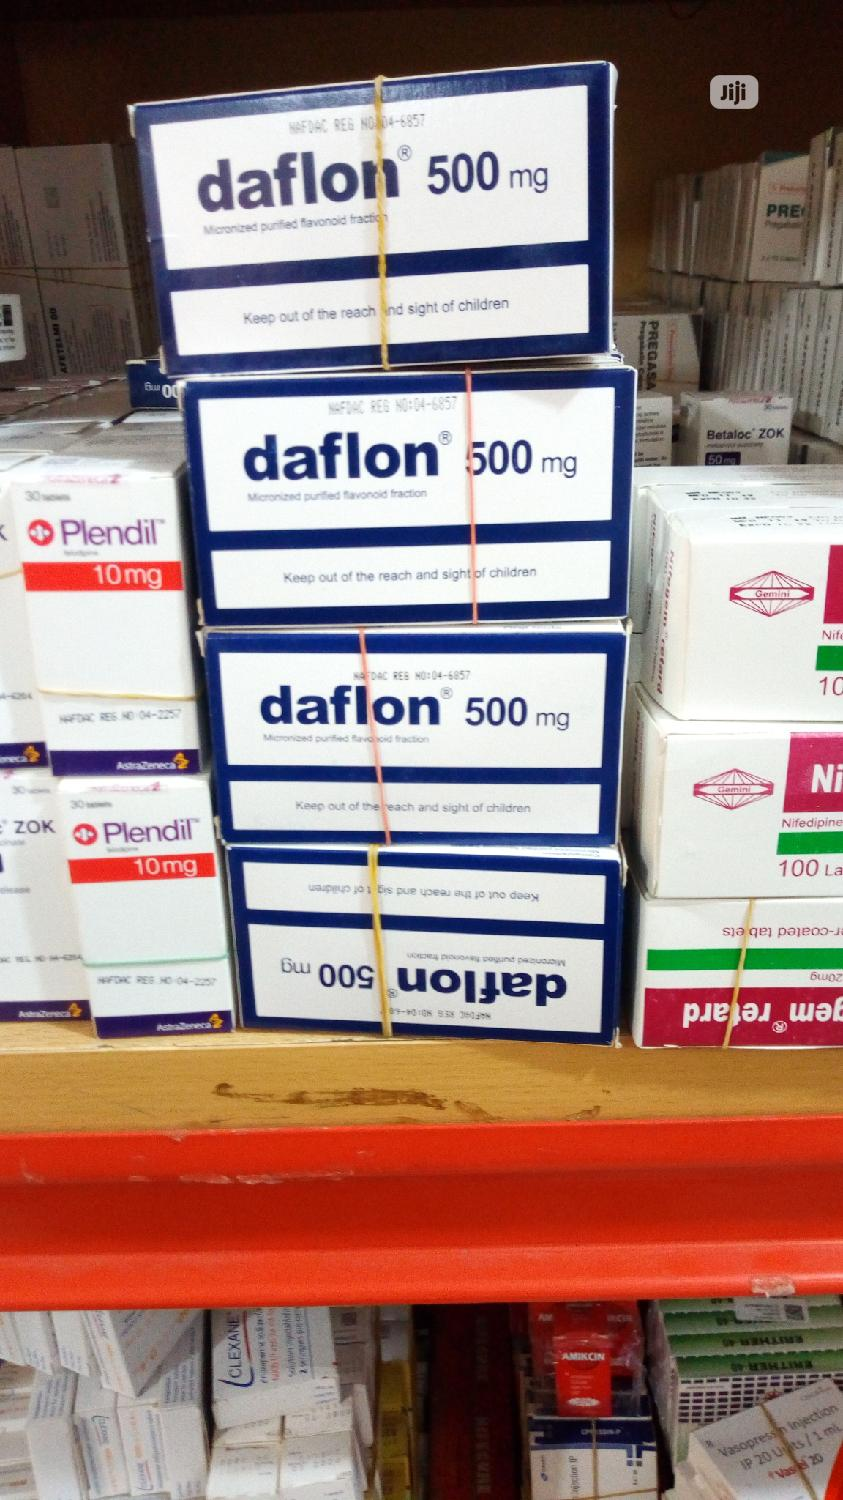 Varicose Veins Treatment With Daflon 500 Mg And For Pile Treatment